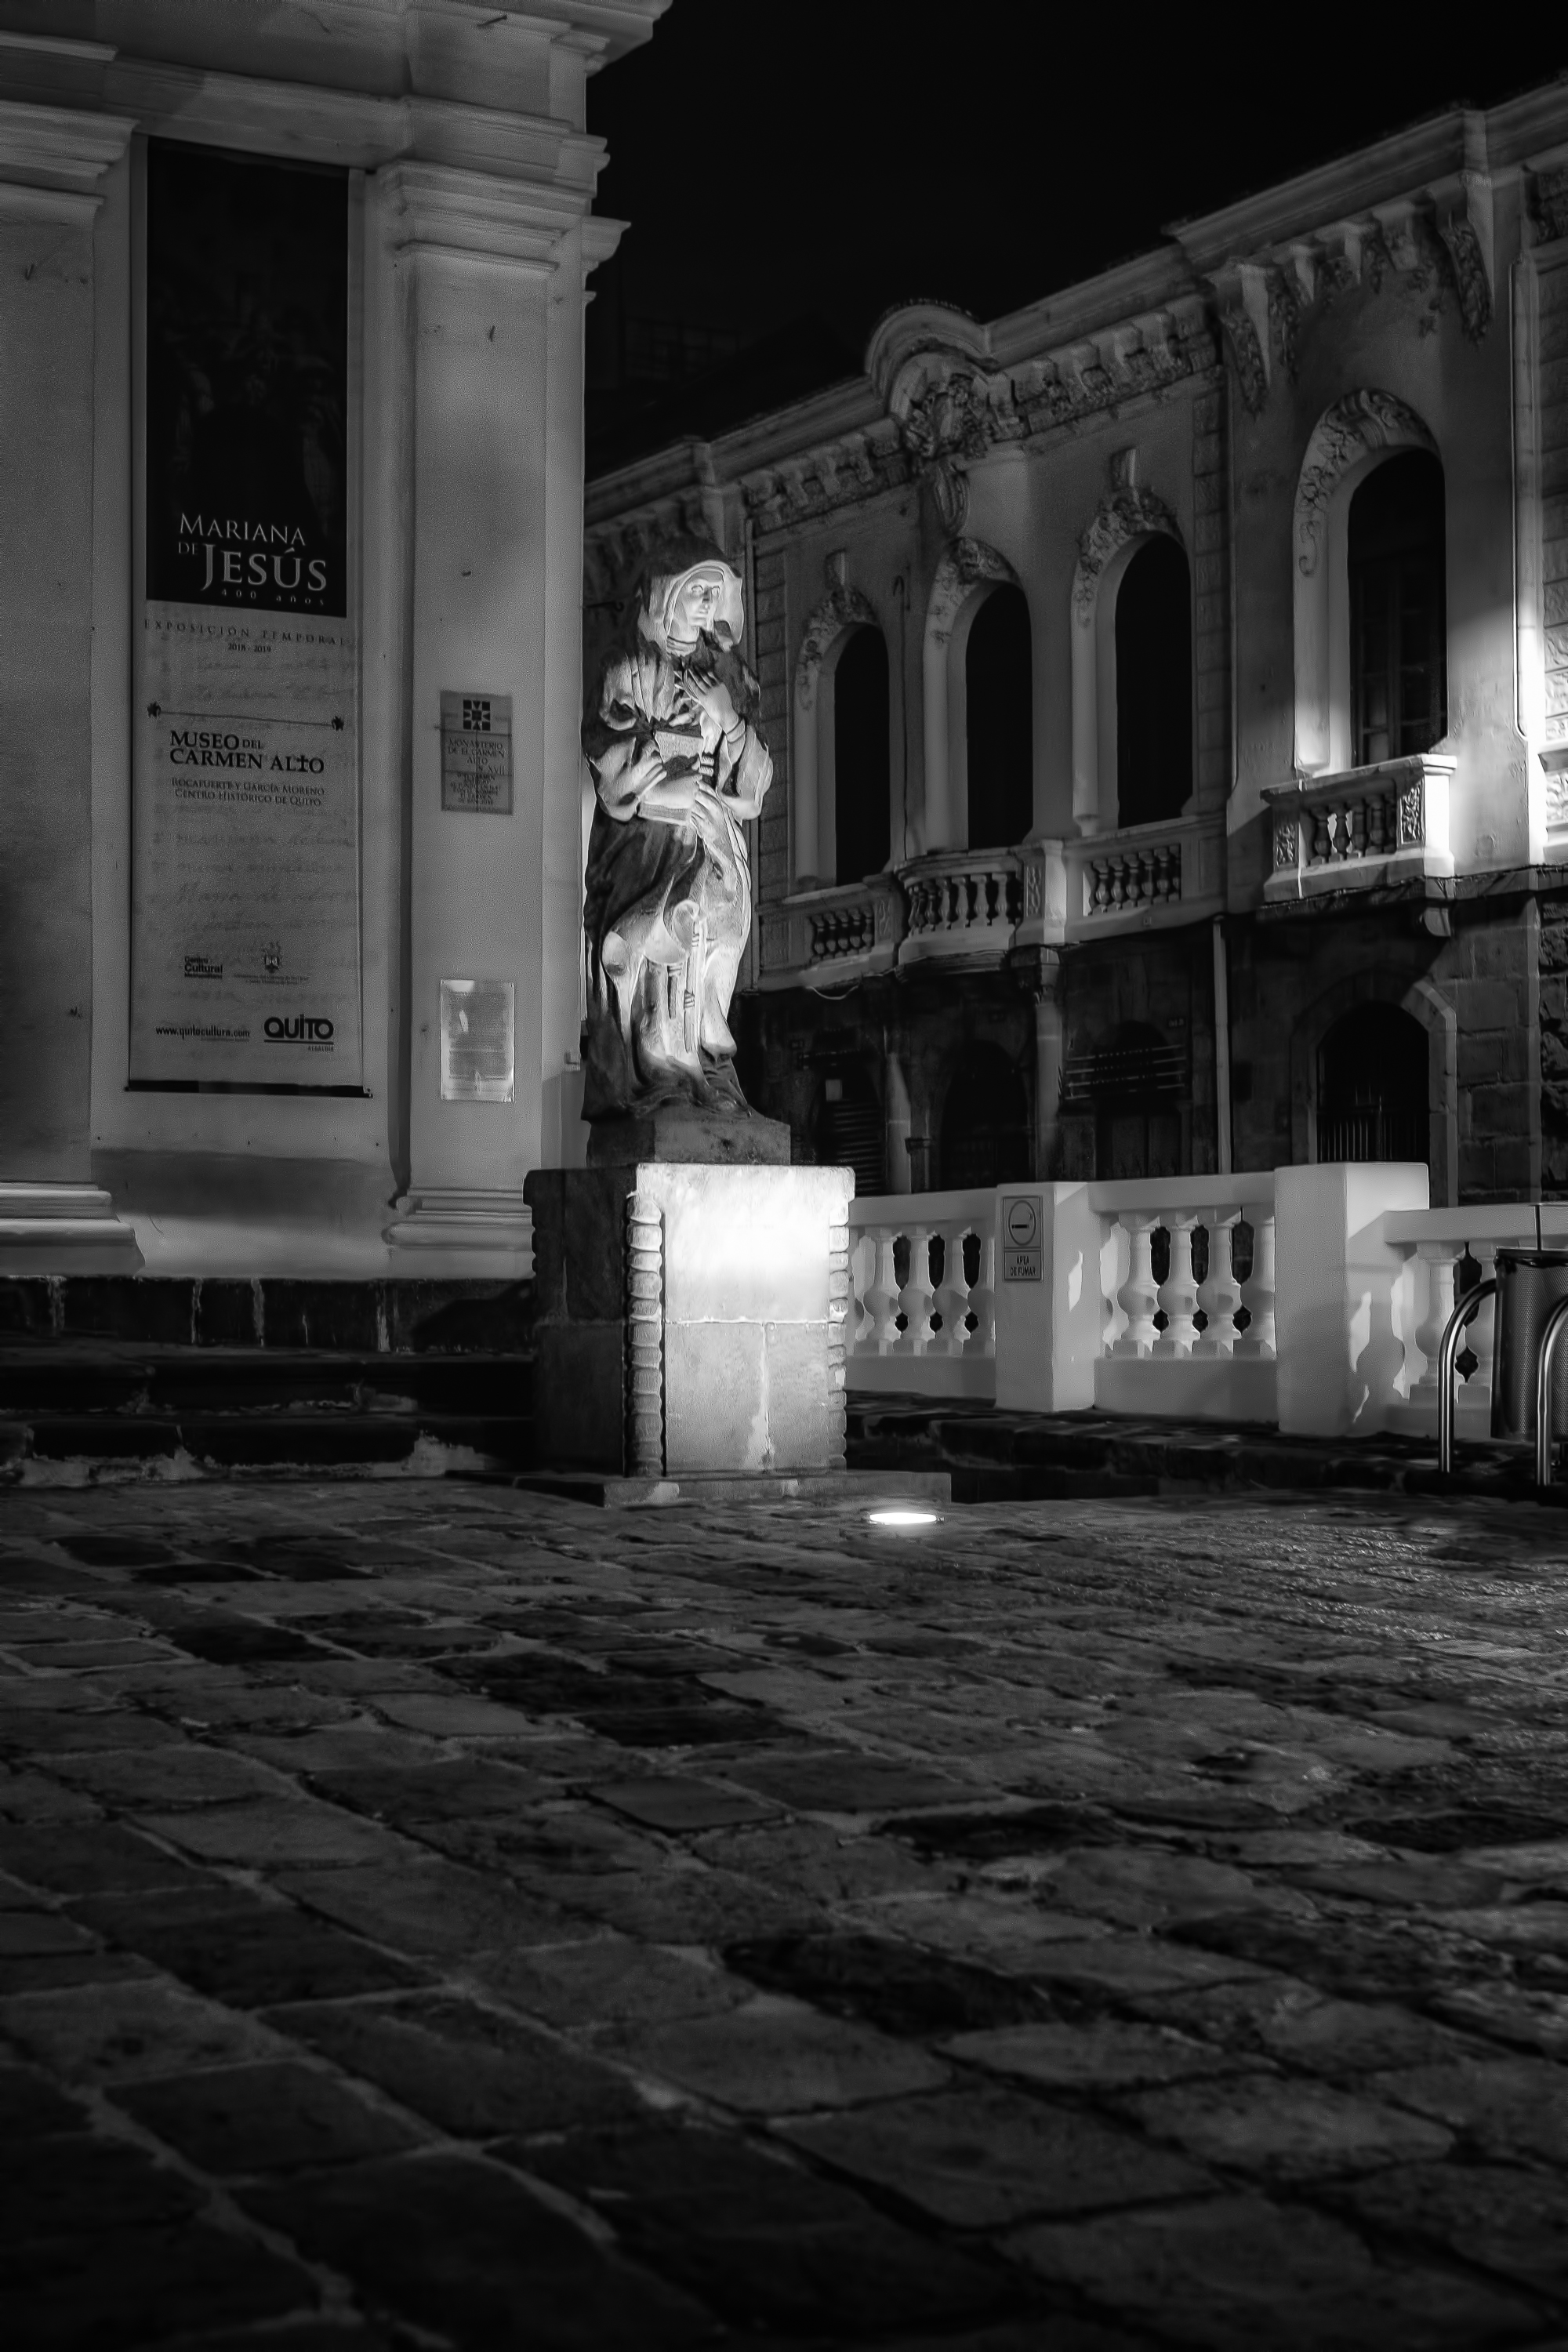 A statue of the Virgin Mary in a darkened church square and a poem about unrequited love. I will let the reader decide if the poem is about romantic love or religious faith.